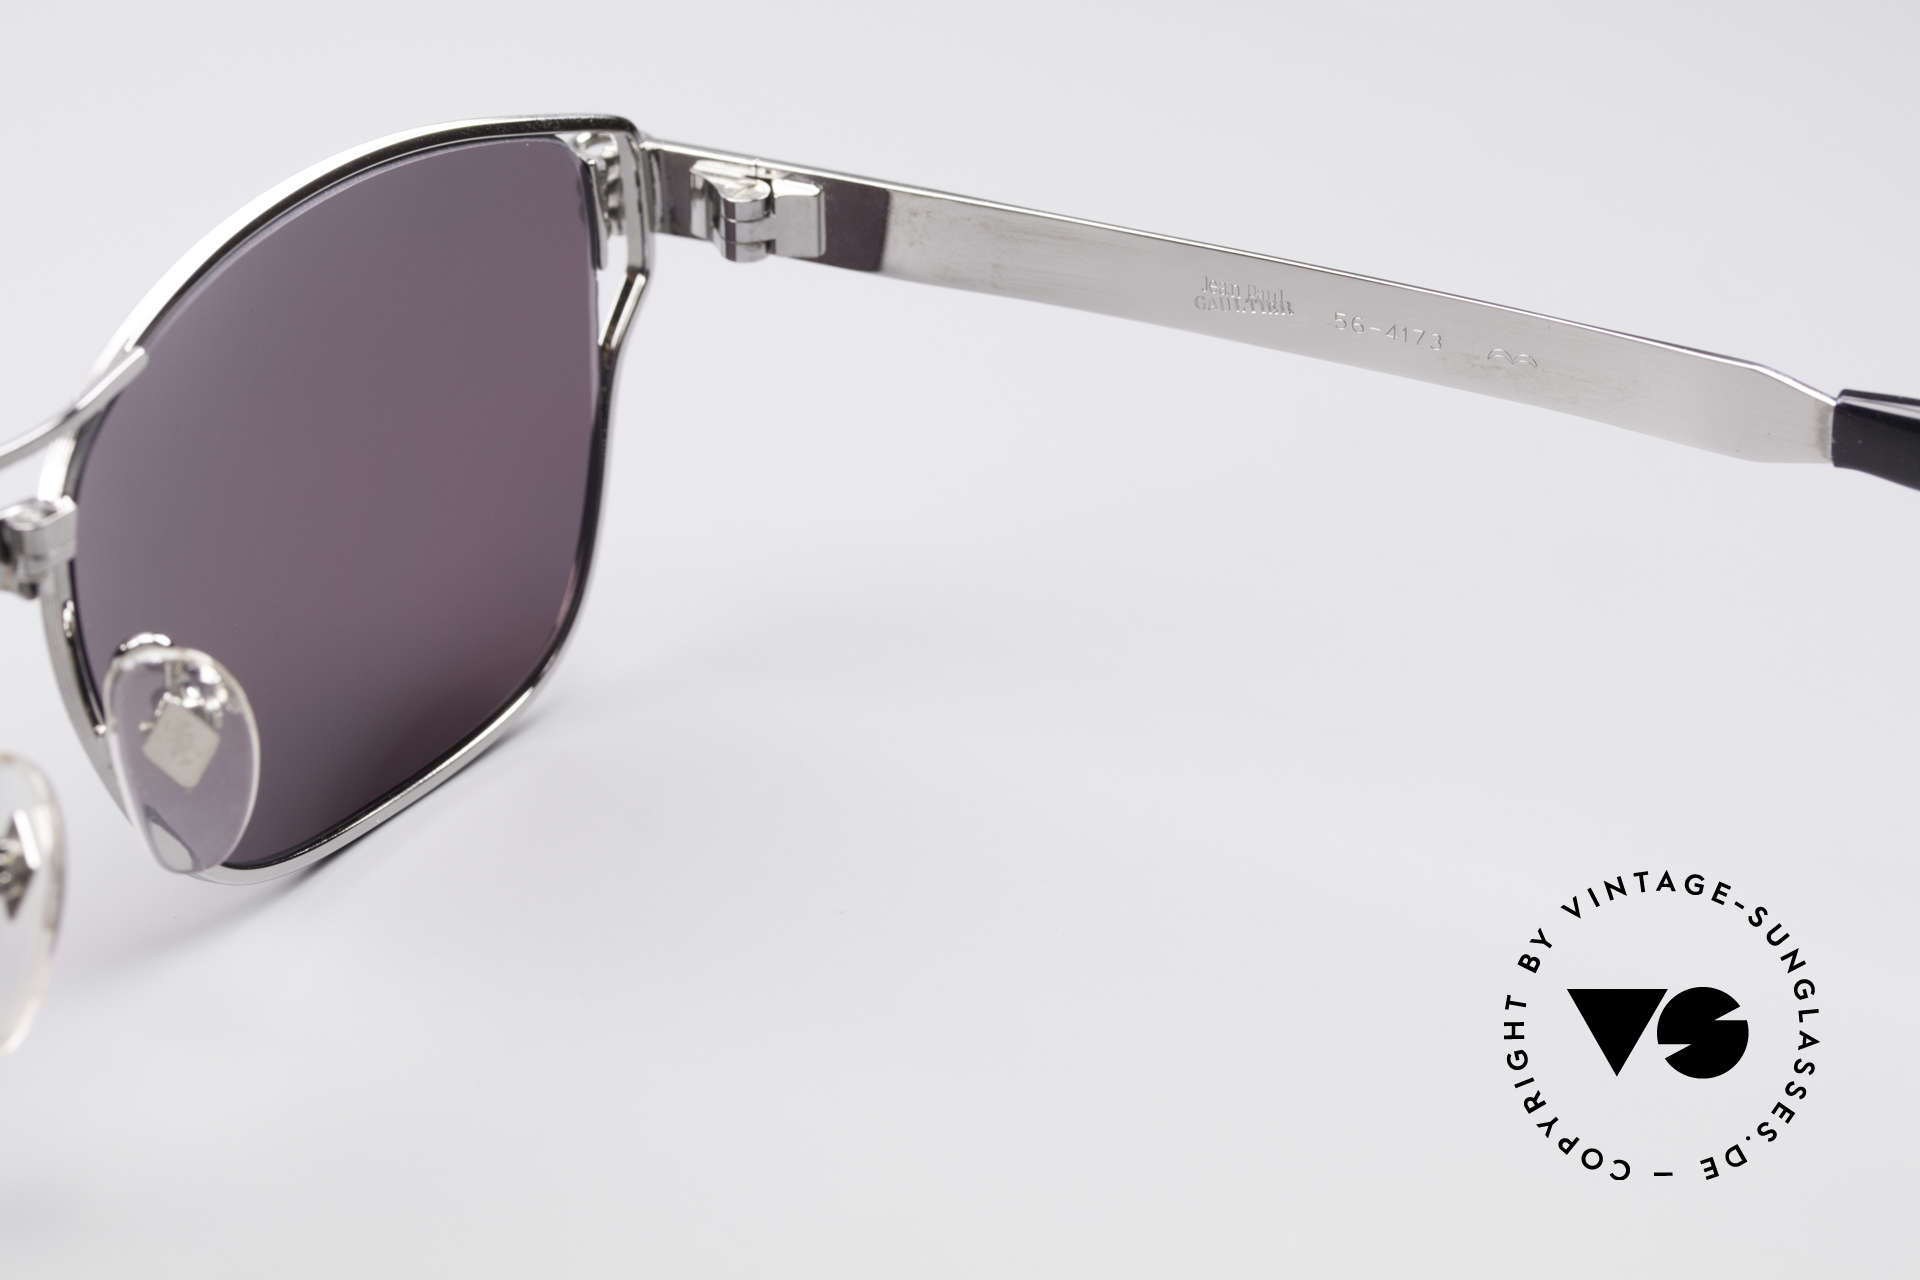 Jean Paul Gaultier 56-4173 Striking Square Sunglasses, Size: large, Made for Men